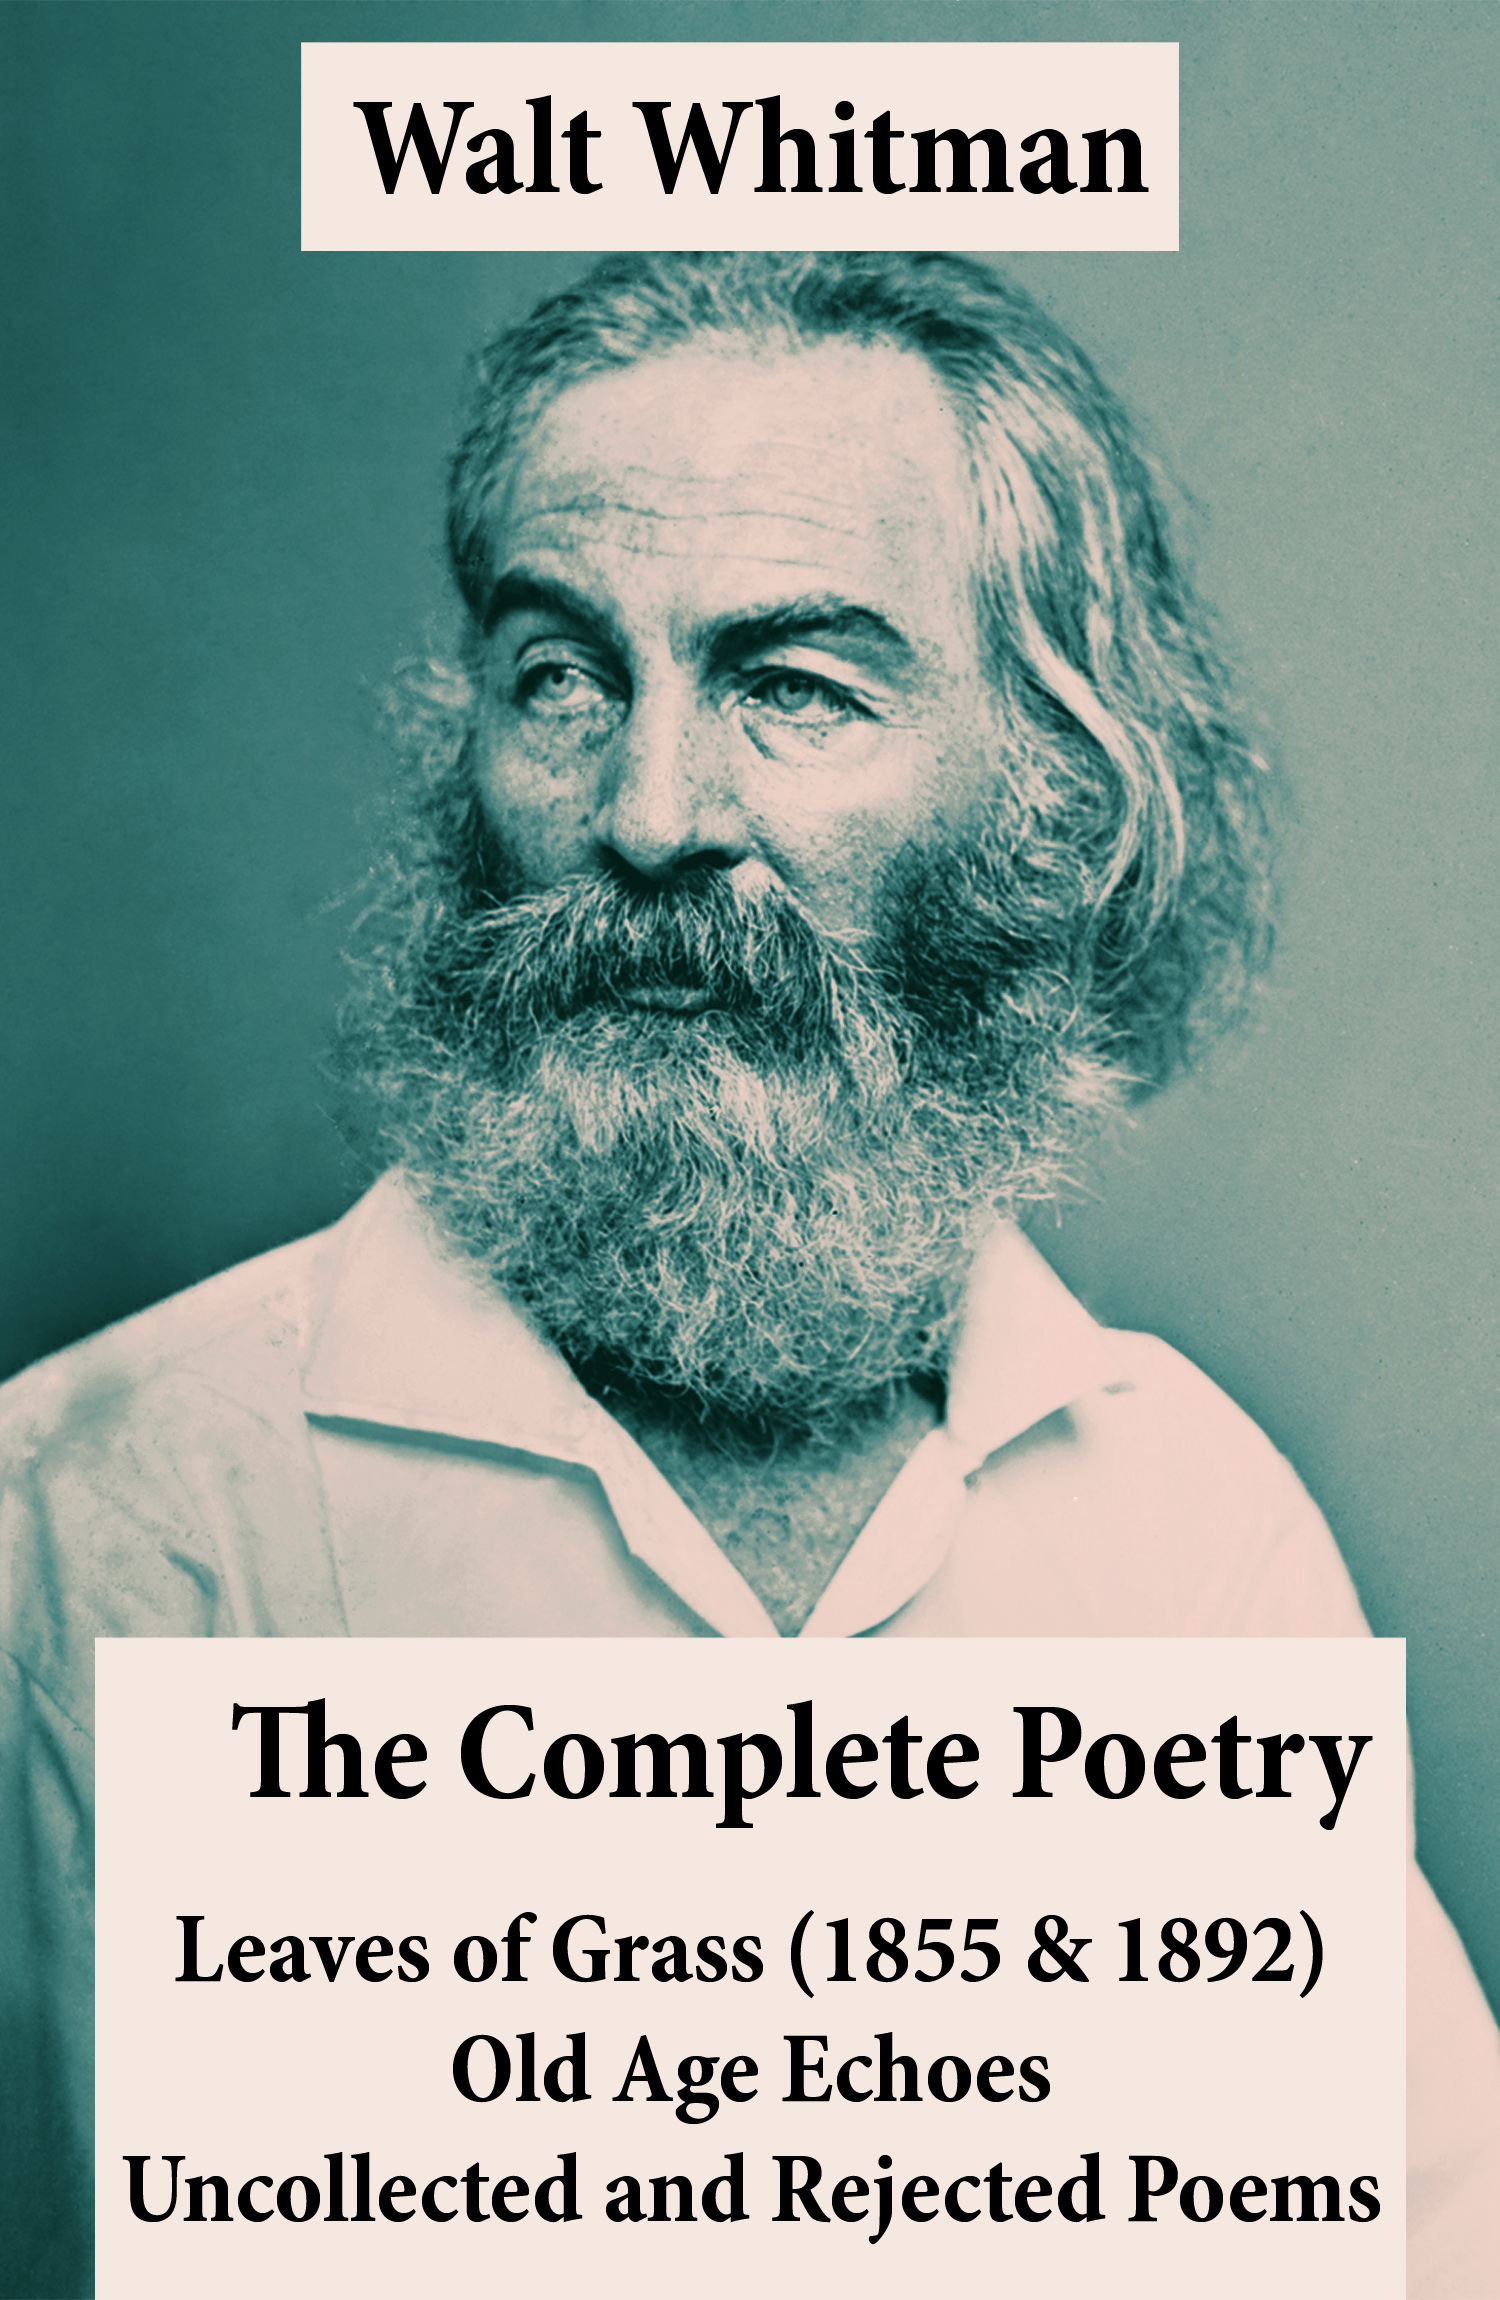 The Complete Poetry of Walt Whitman: Leaves of Grass (1855 & 1892) + Old Age Echoes + Uncollected and Rejected Poems